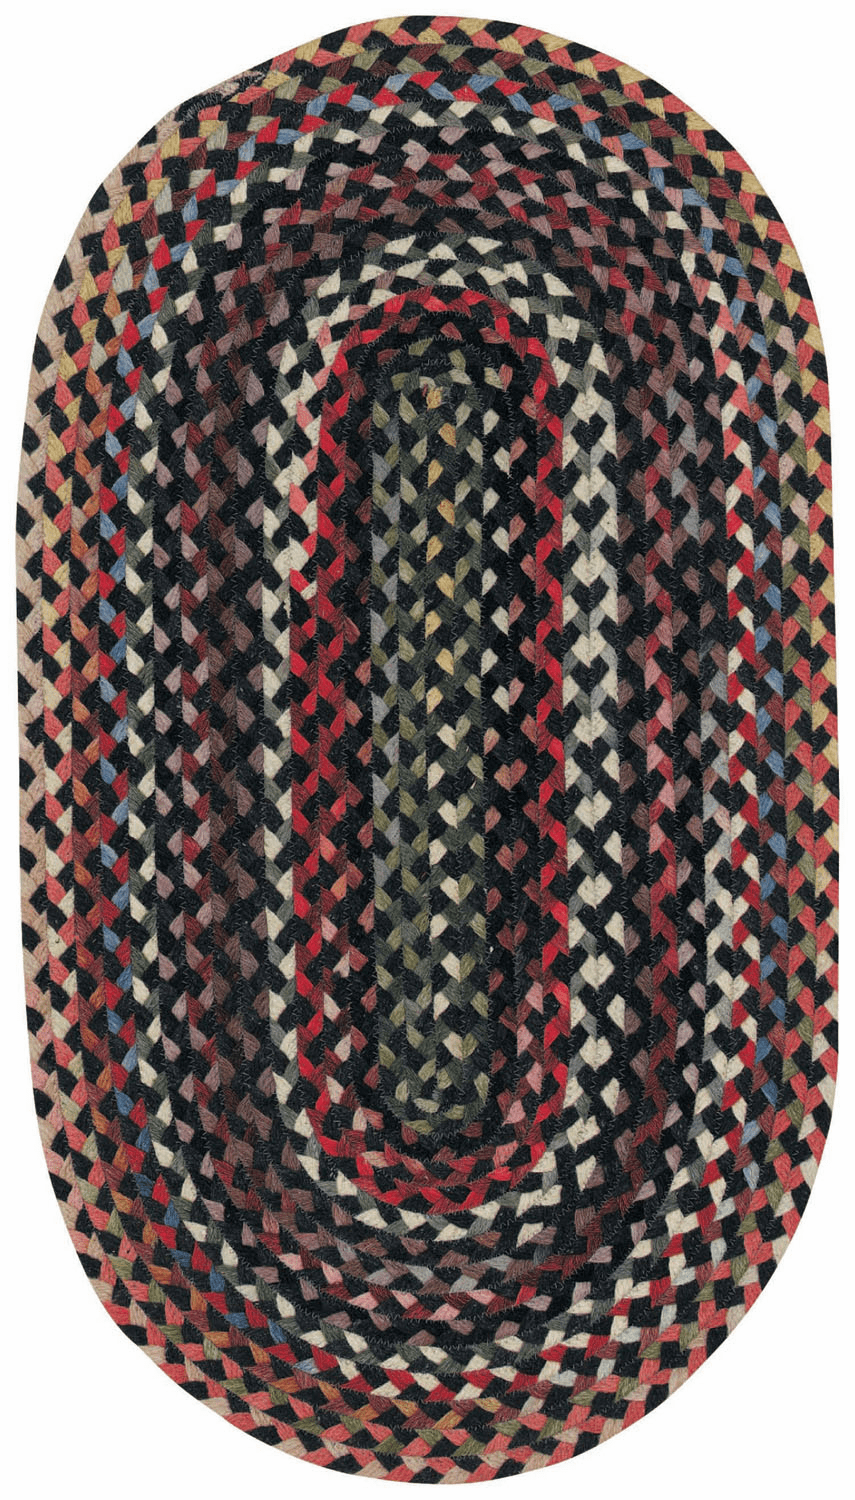 Hand-Braided Darkest Black Rug